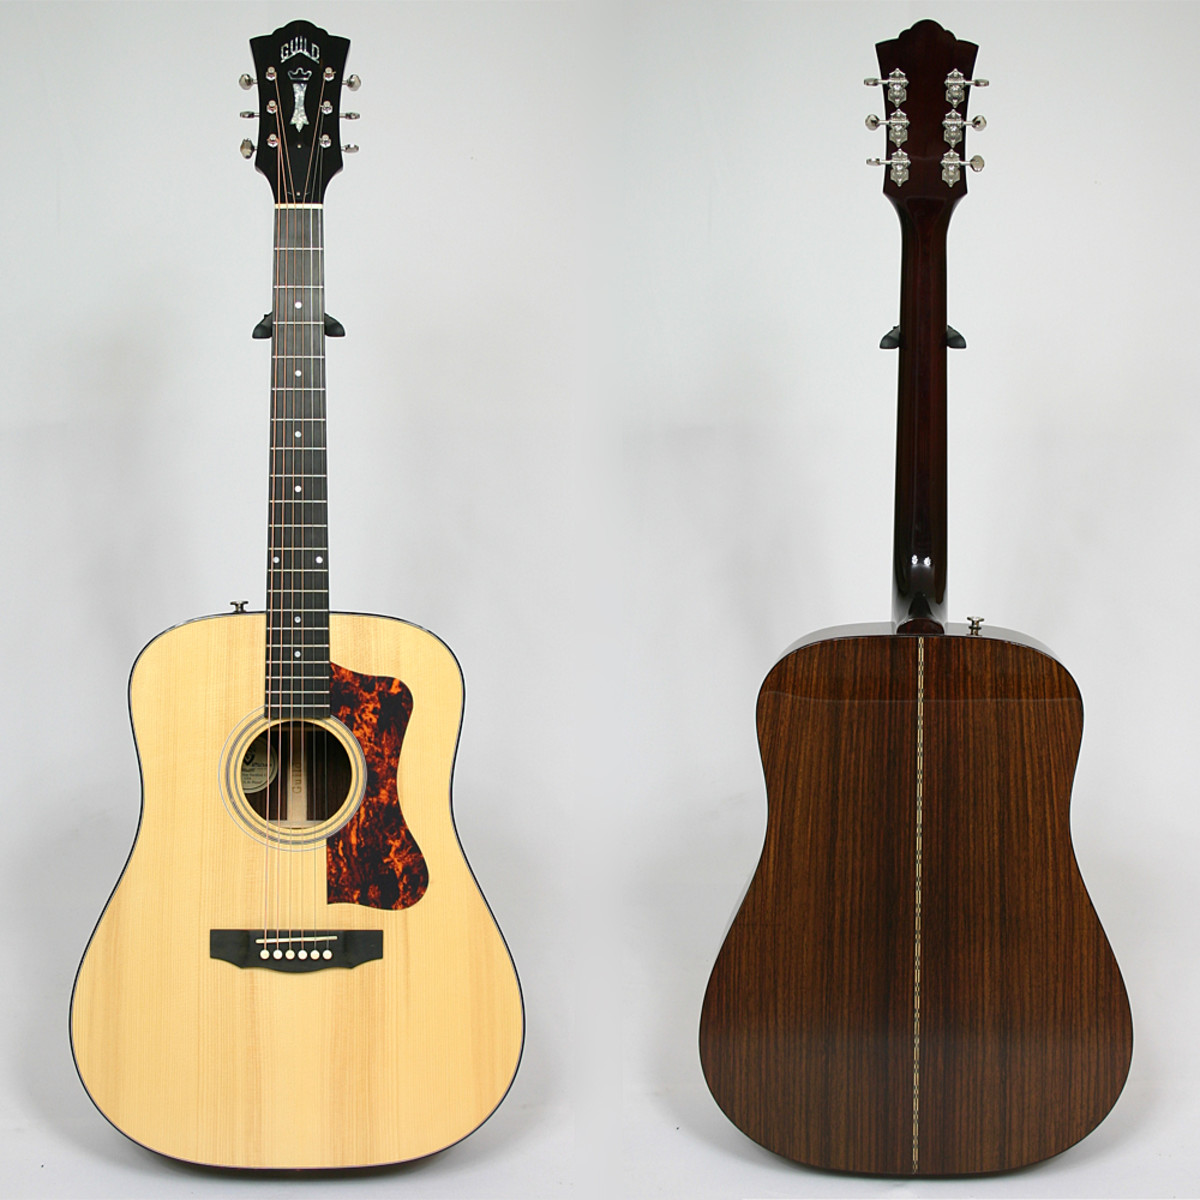 The Guild D-50 Bluegrass Special and Guild D-40 Jubilee Acoustic Guitars